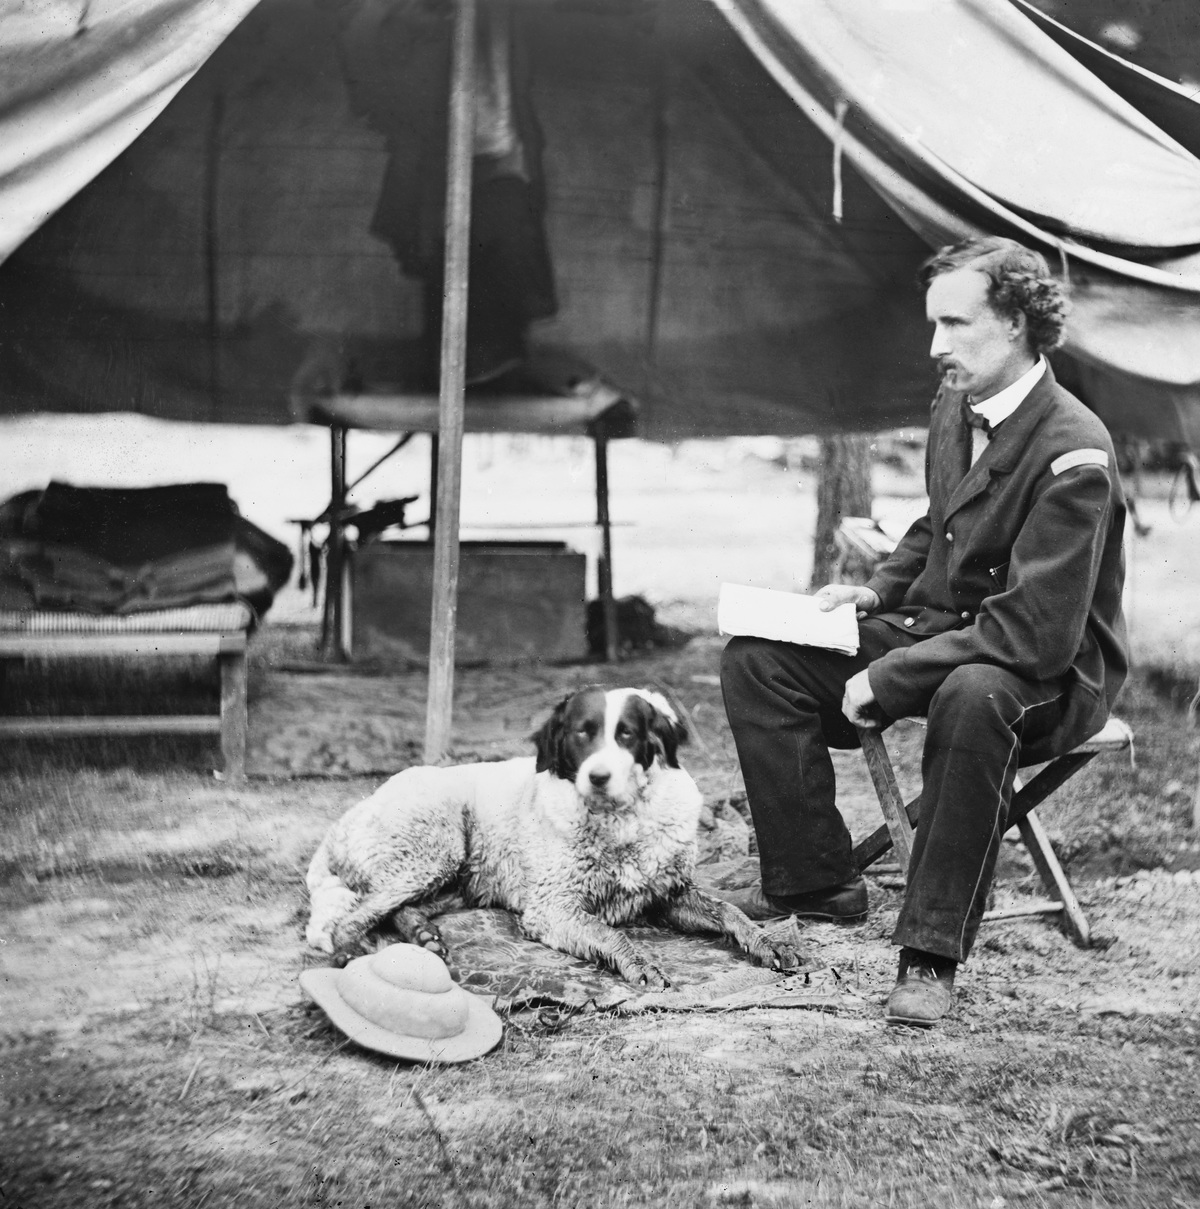 Lieutenant George A. Custer with Dog, Peninsula Campaign, Virginia, USA, 1862.